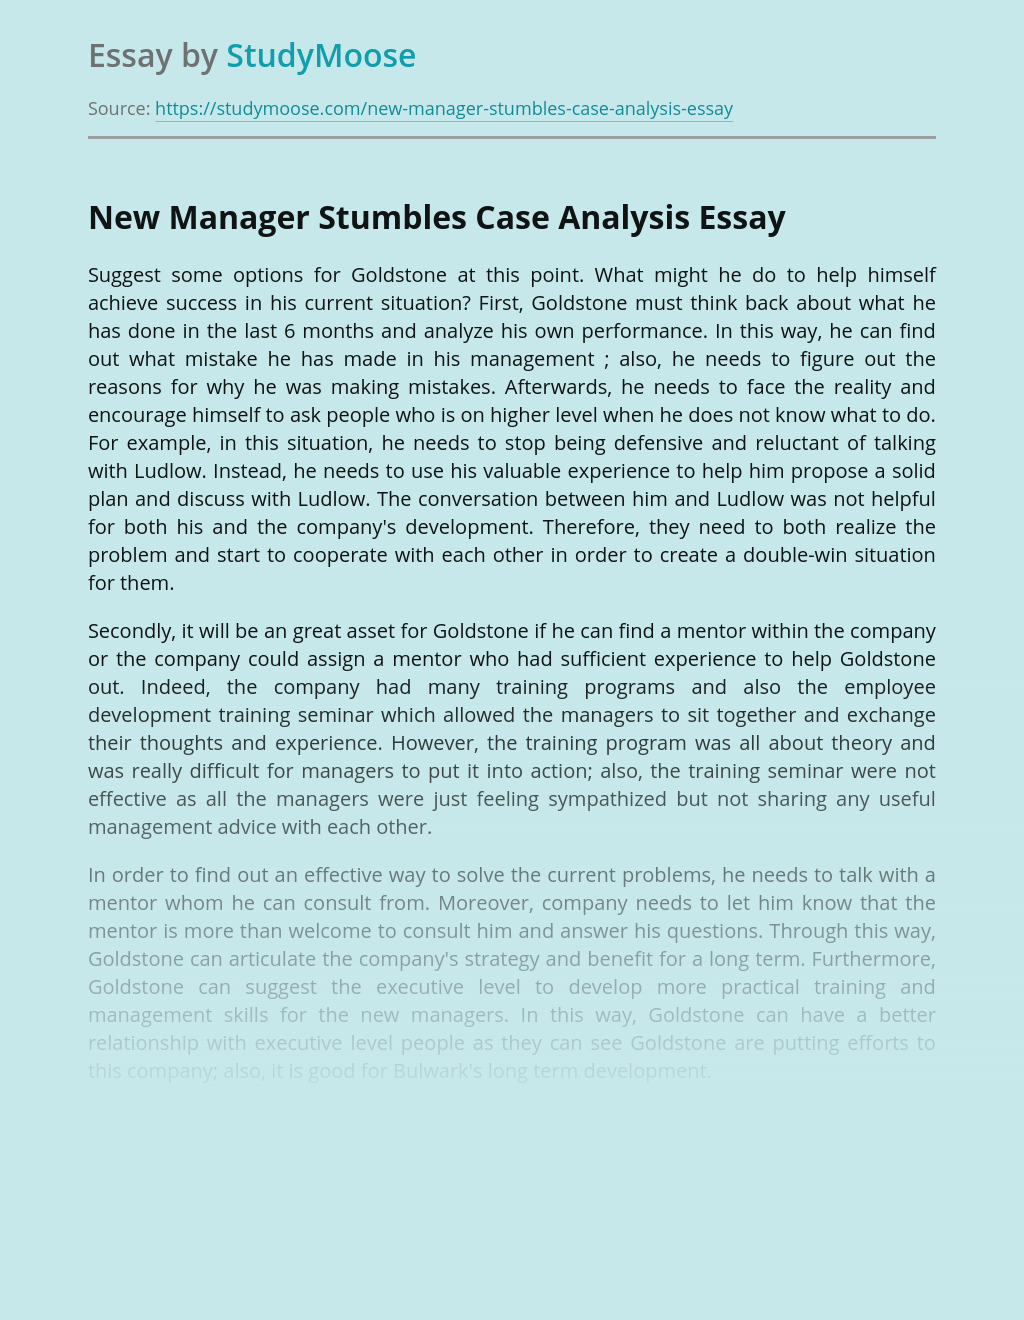 New Manager Stumbles Case Analysis